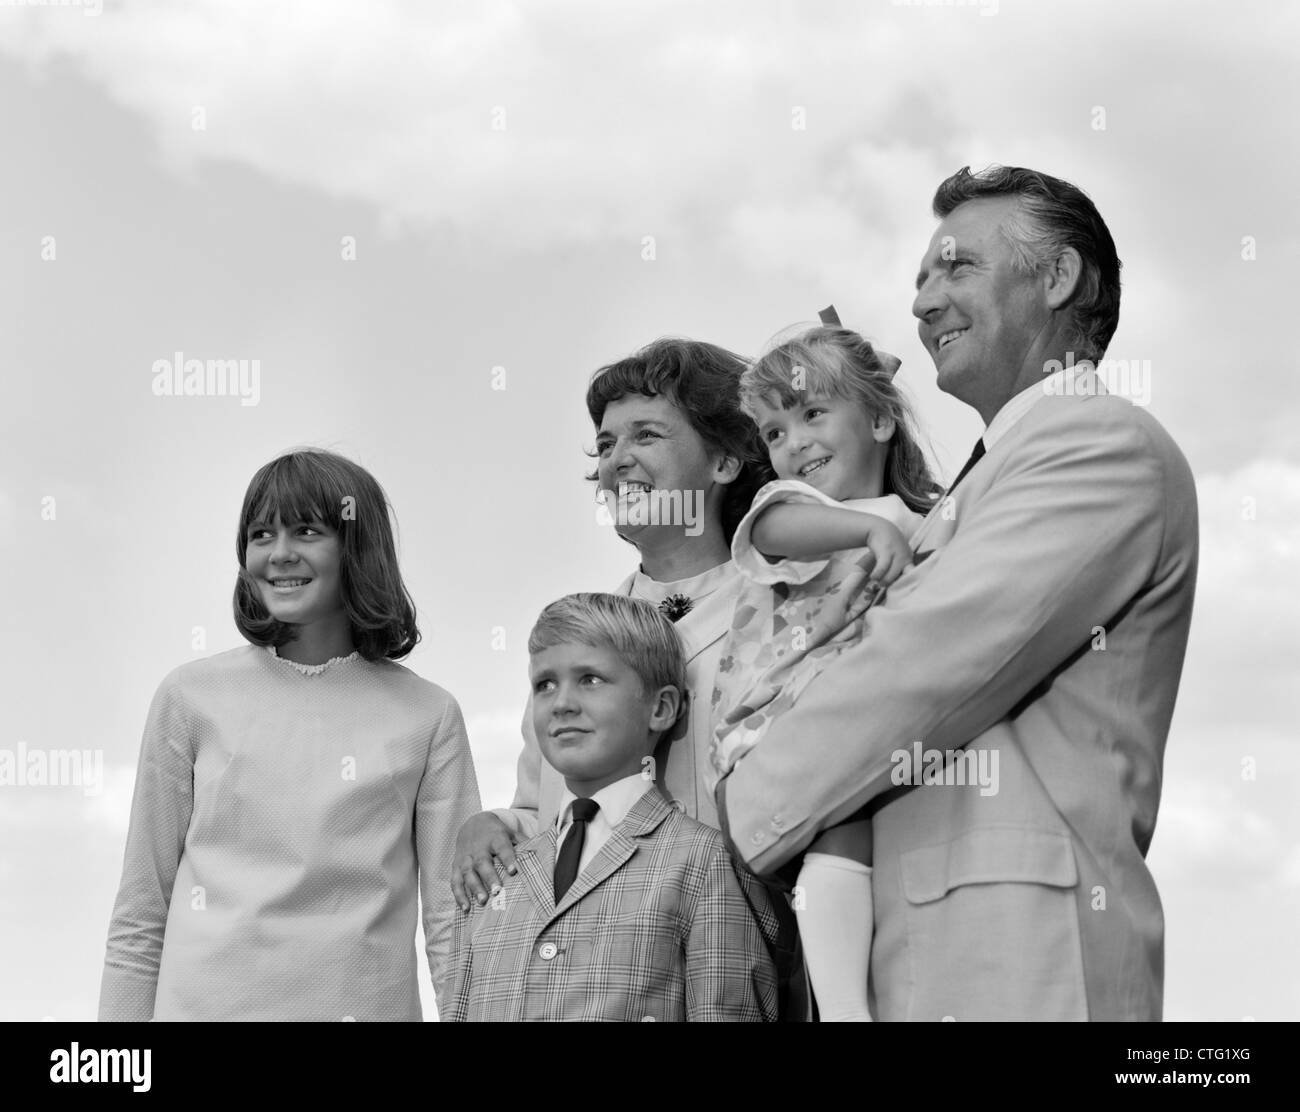 1960s PORTRAIT FAMILY OF FIVE OUTSIDE LOOKING OFF INTO DISTANCE - Stock Image